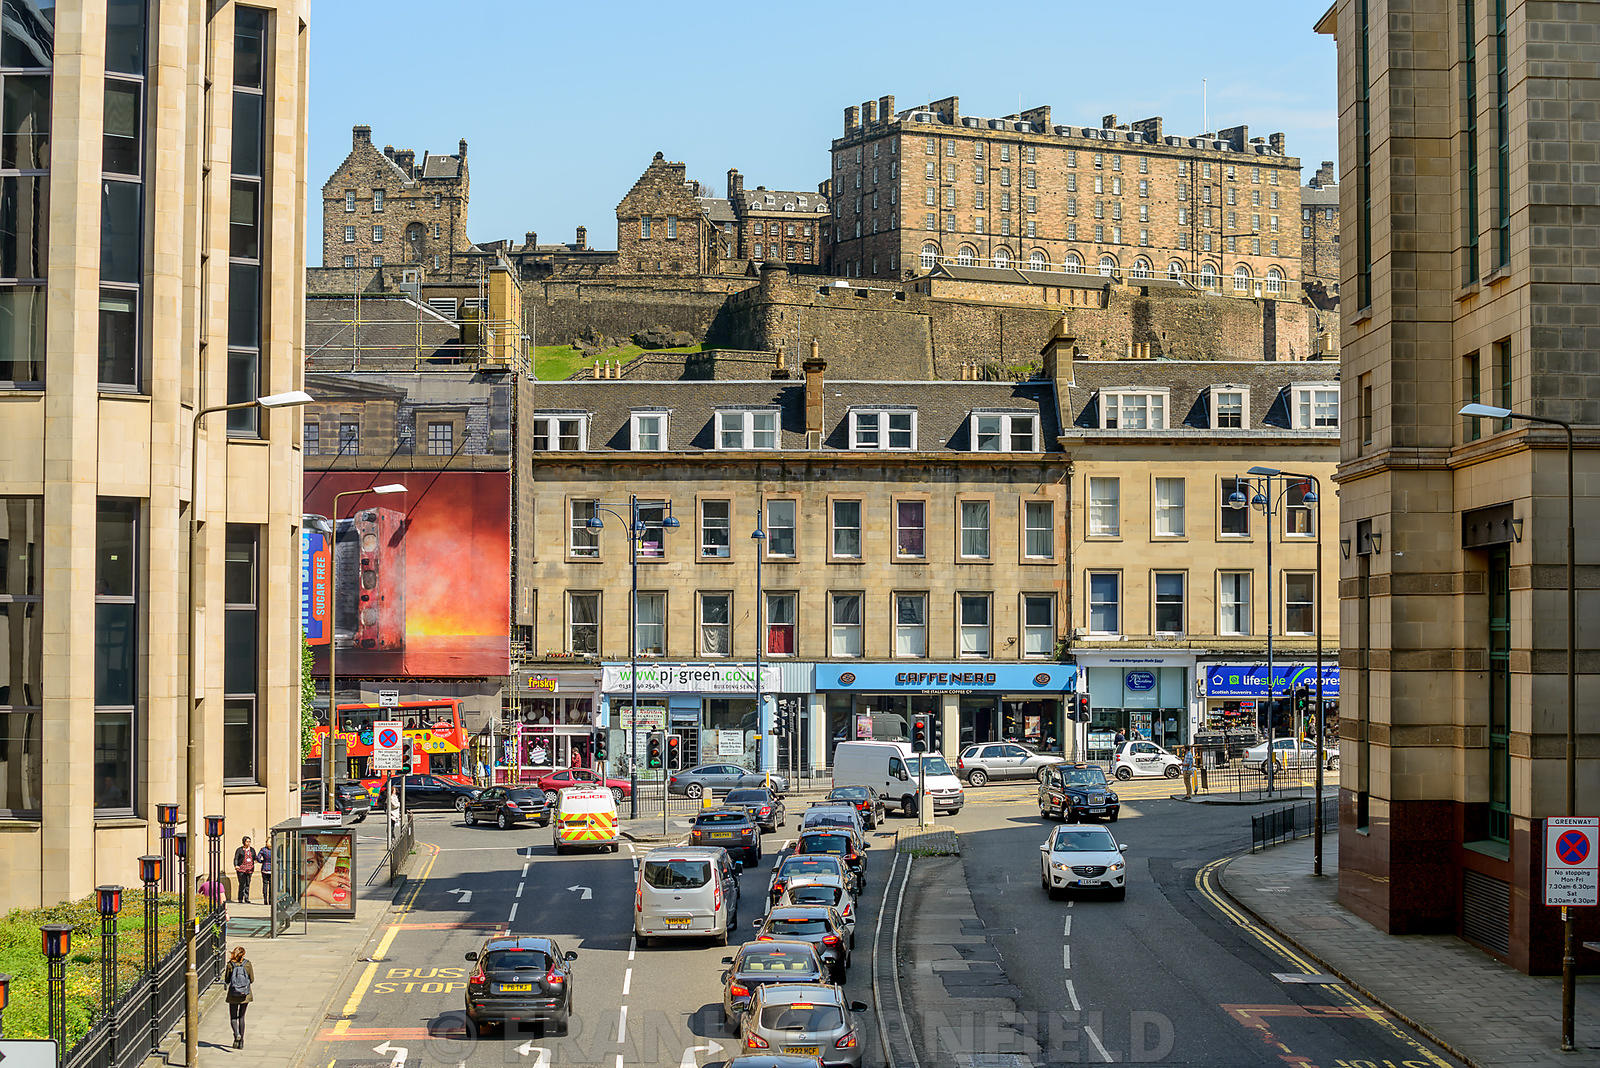 West Approach Road junction with Lothian Road.